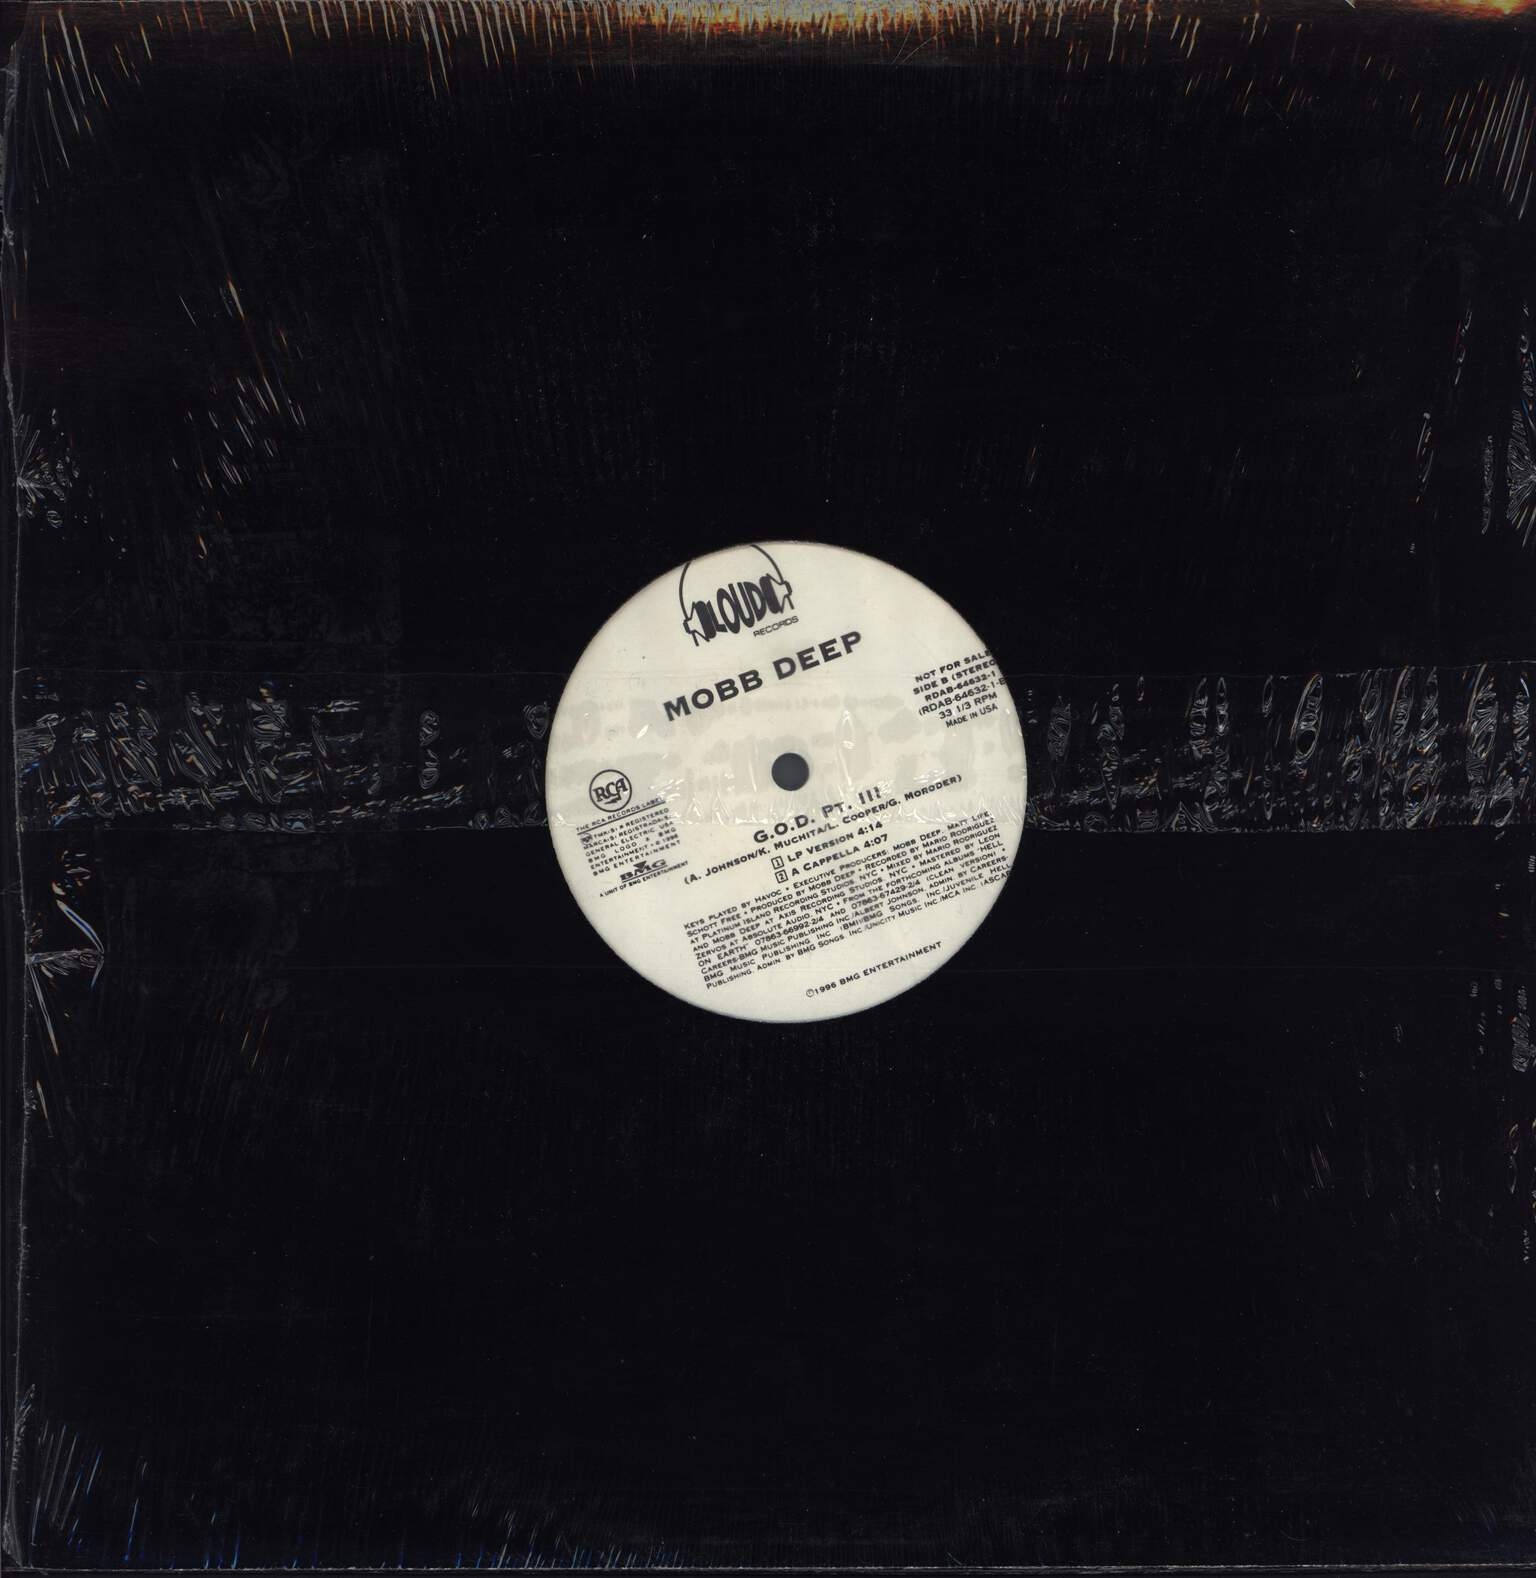 "Mobb Deep: G.O.D. Pt. III, 12"" Maxi Single (Vinyl)"